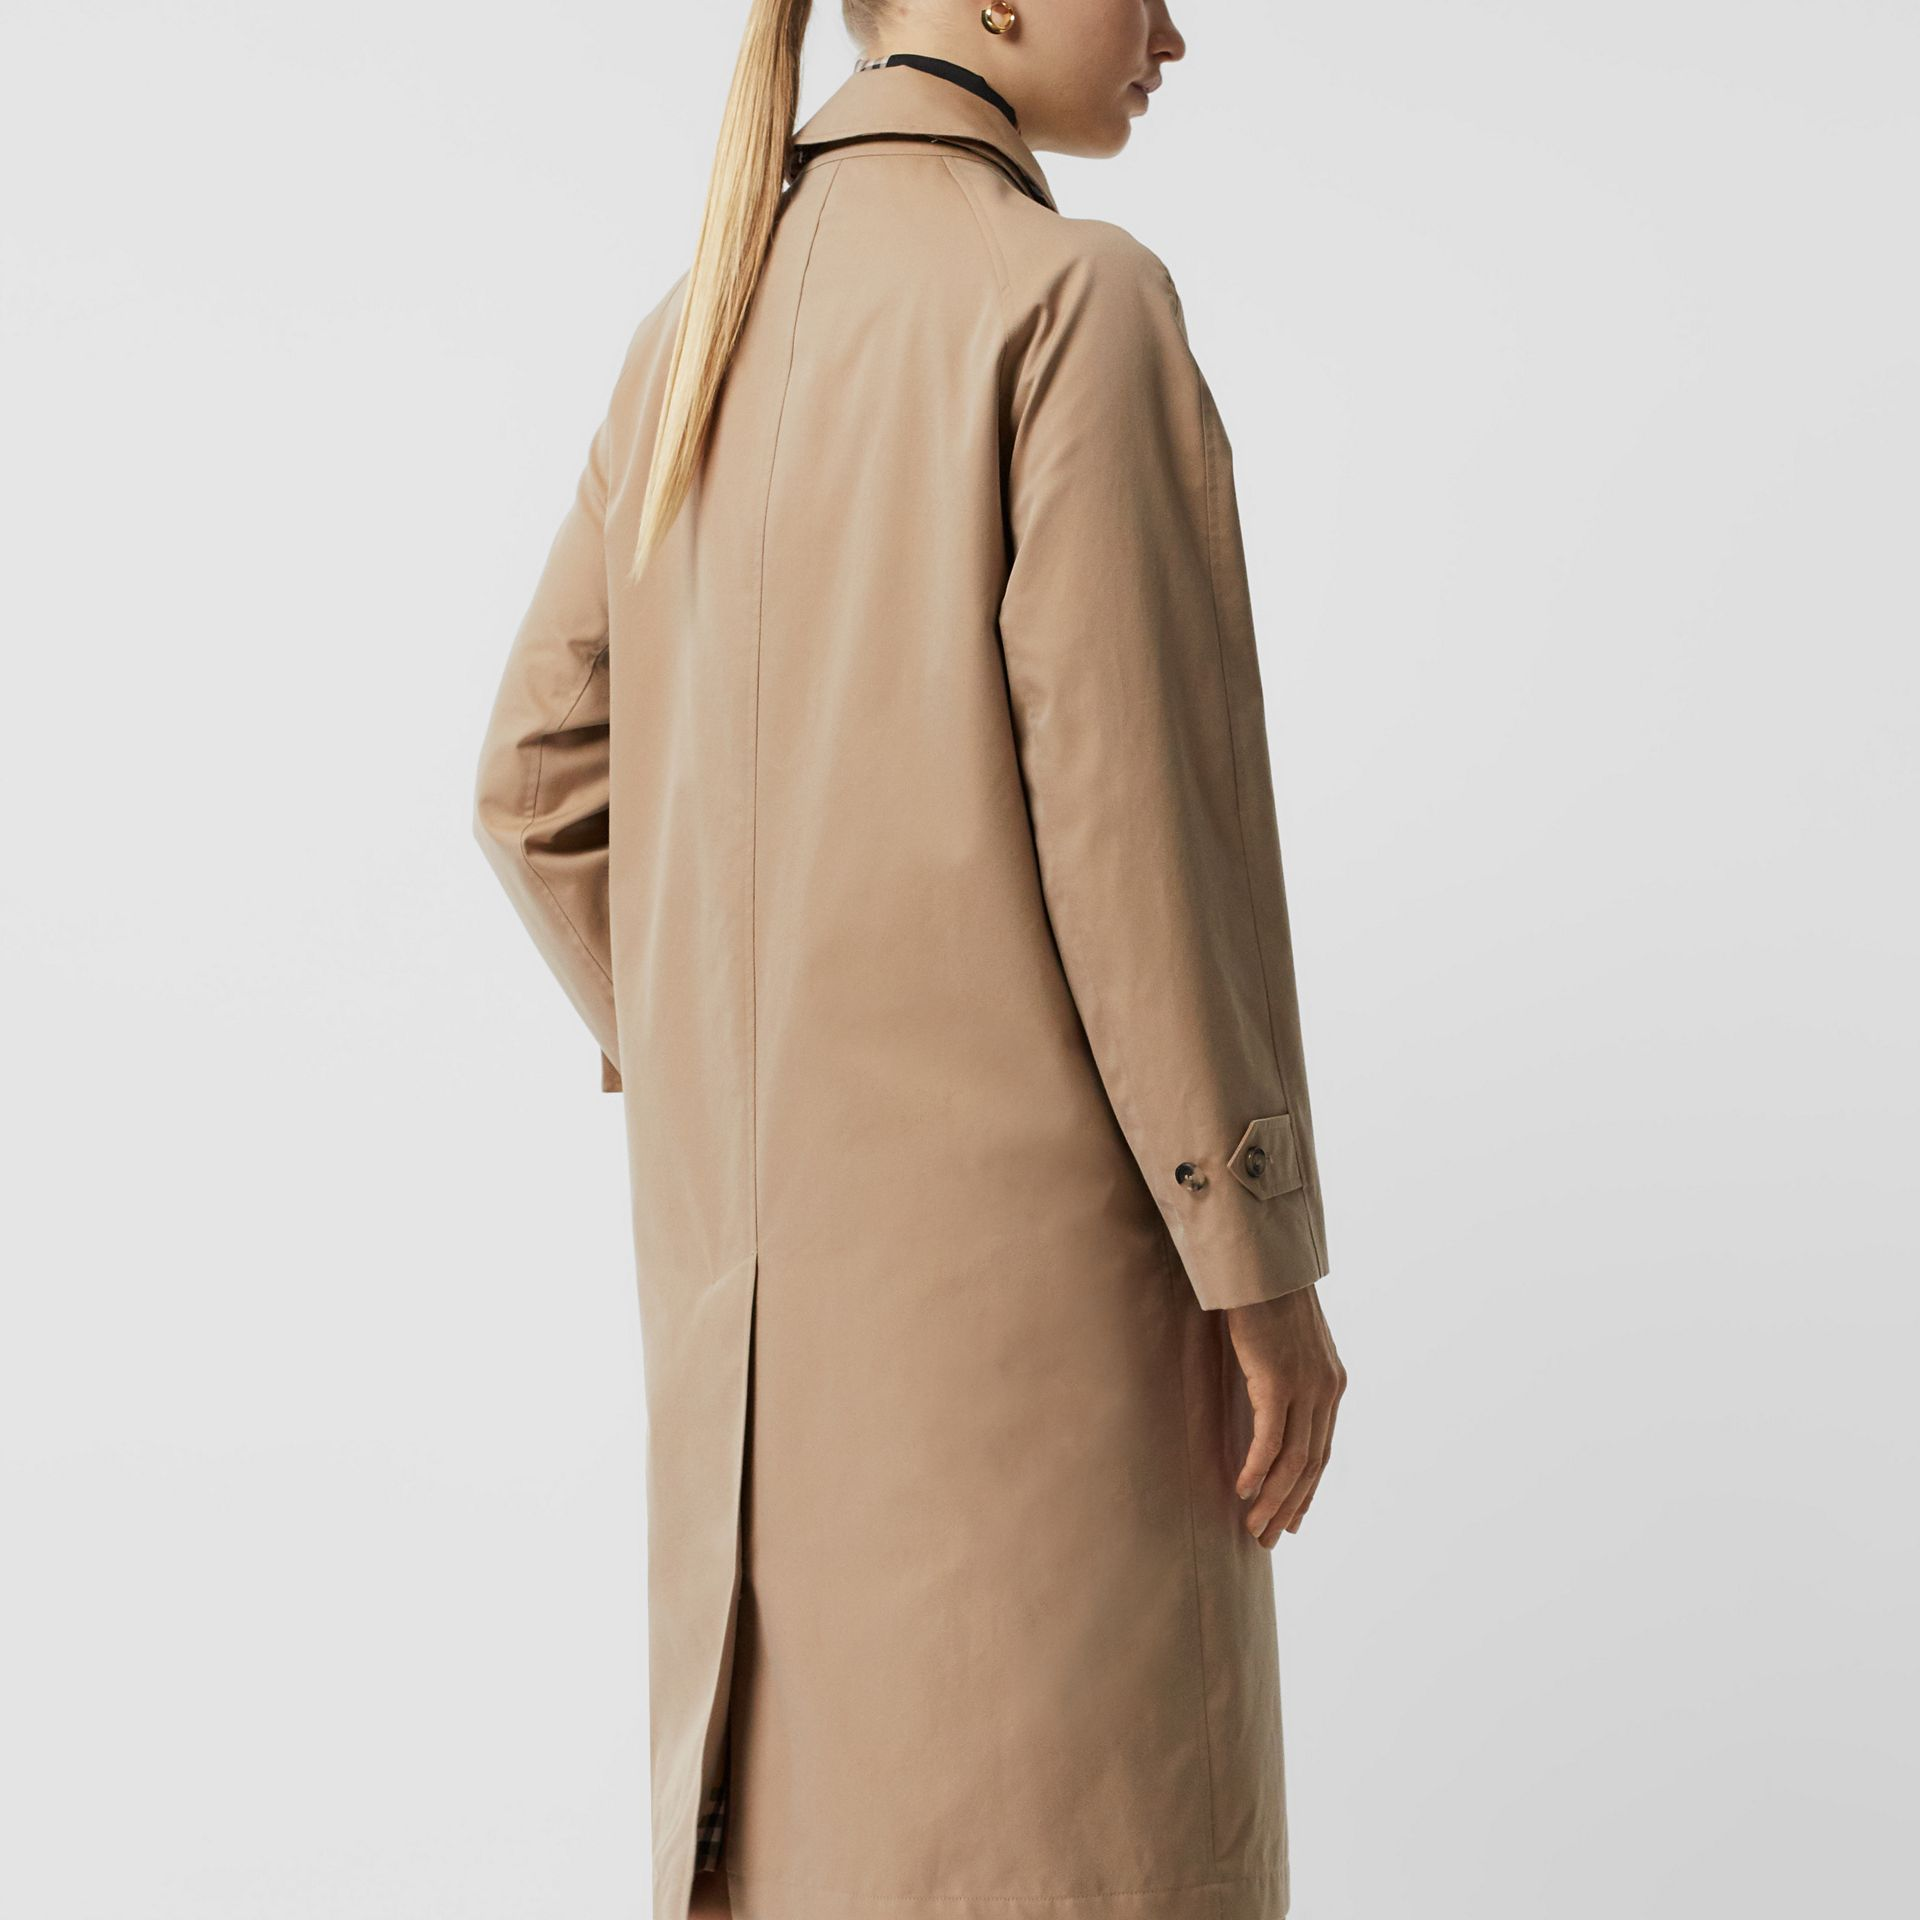 Grommet Detail Cotton Gabardine Car Coat in Honey - Women | Burberry Singapore - gallery image 2